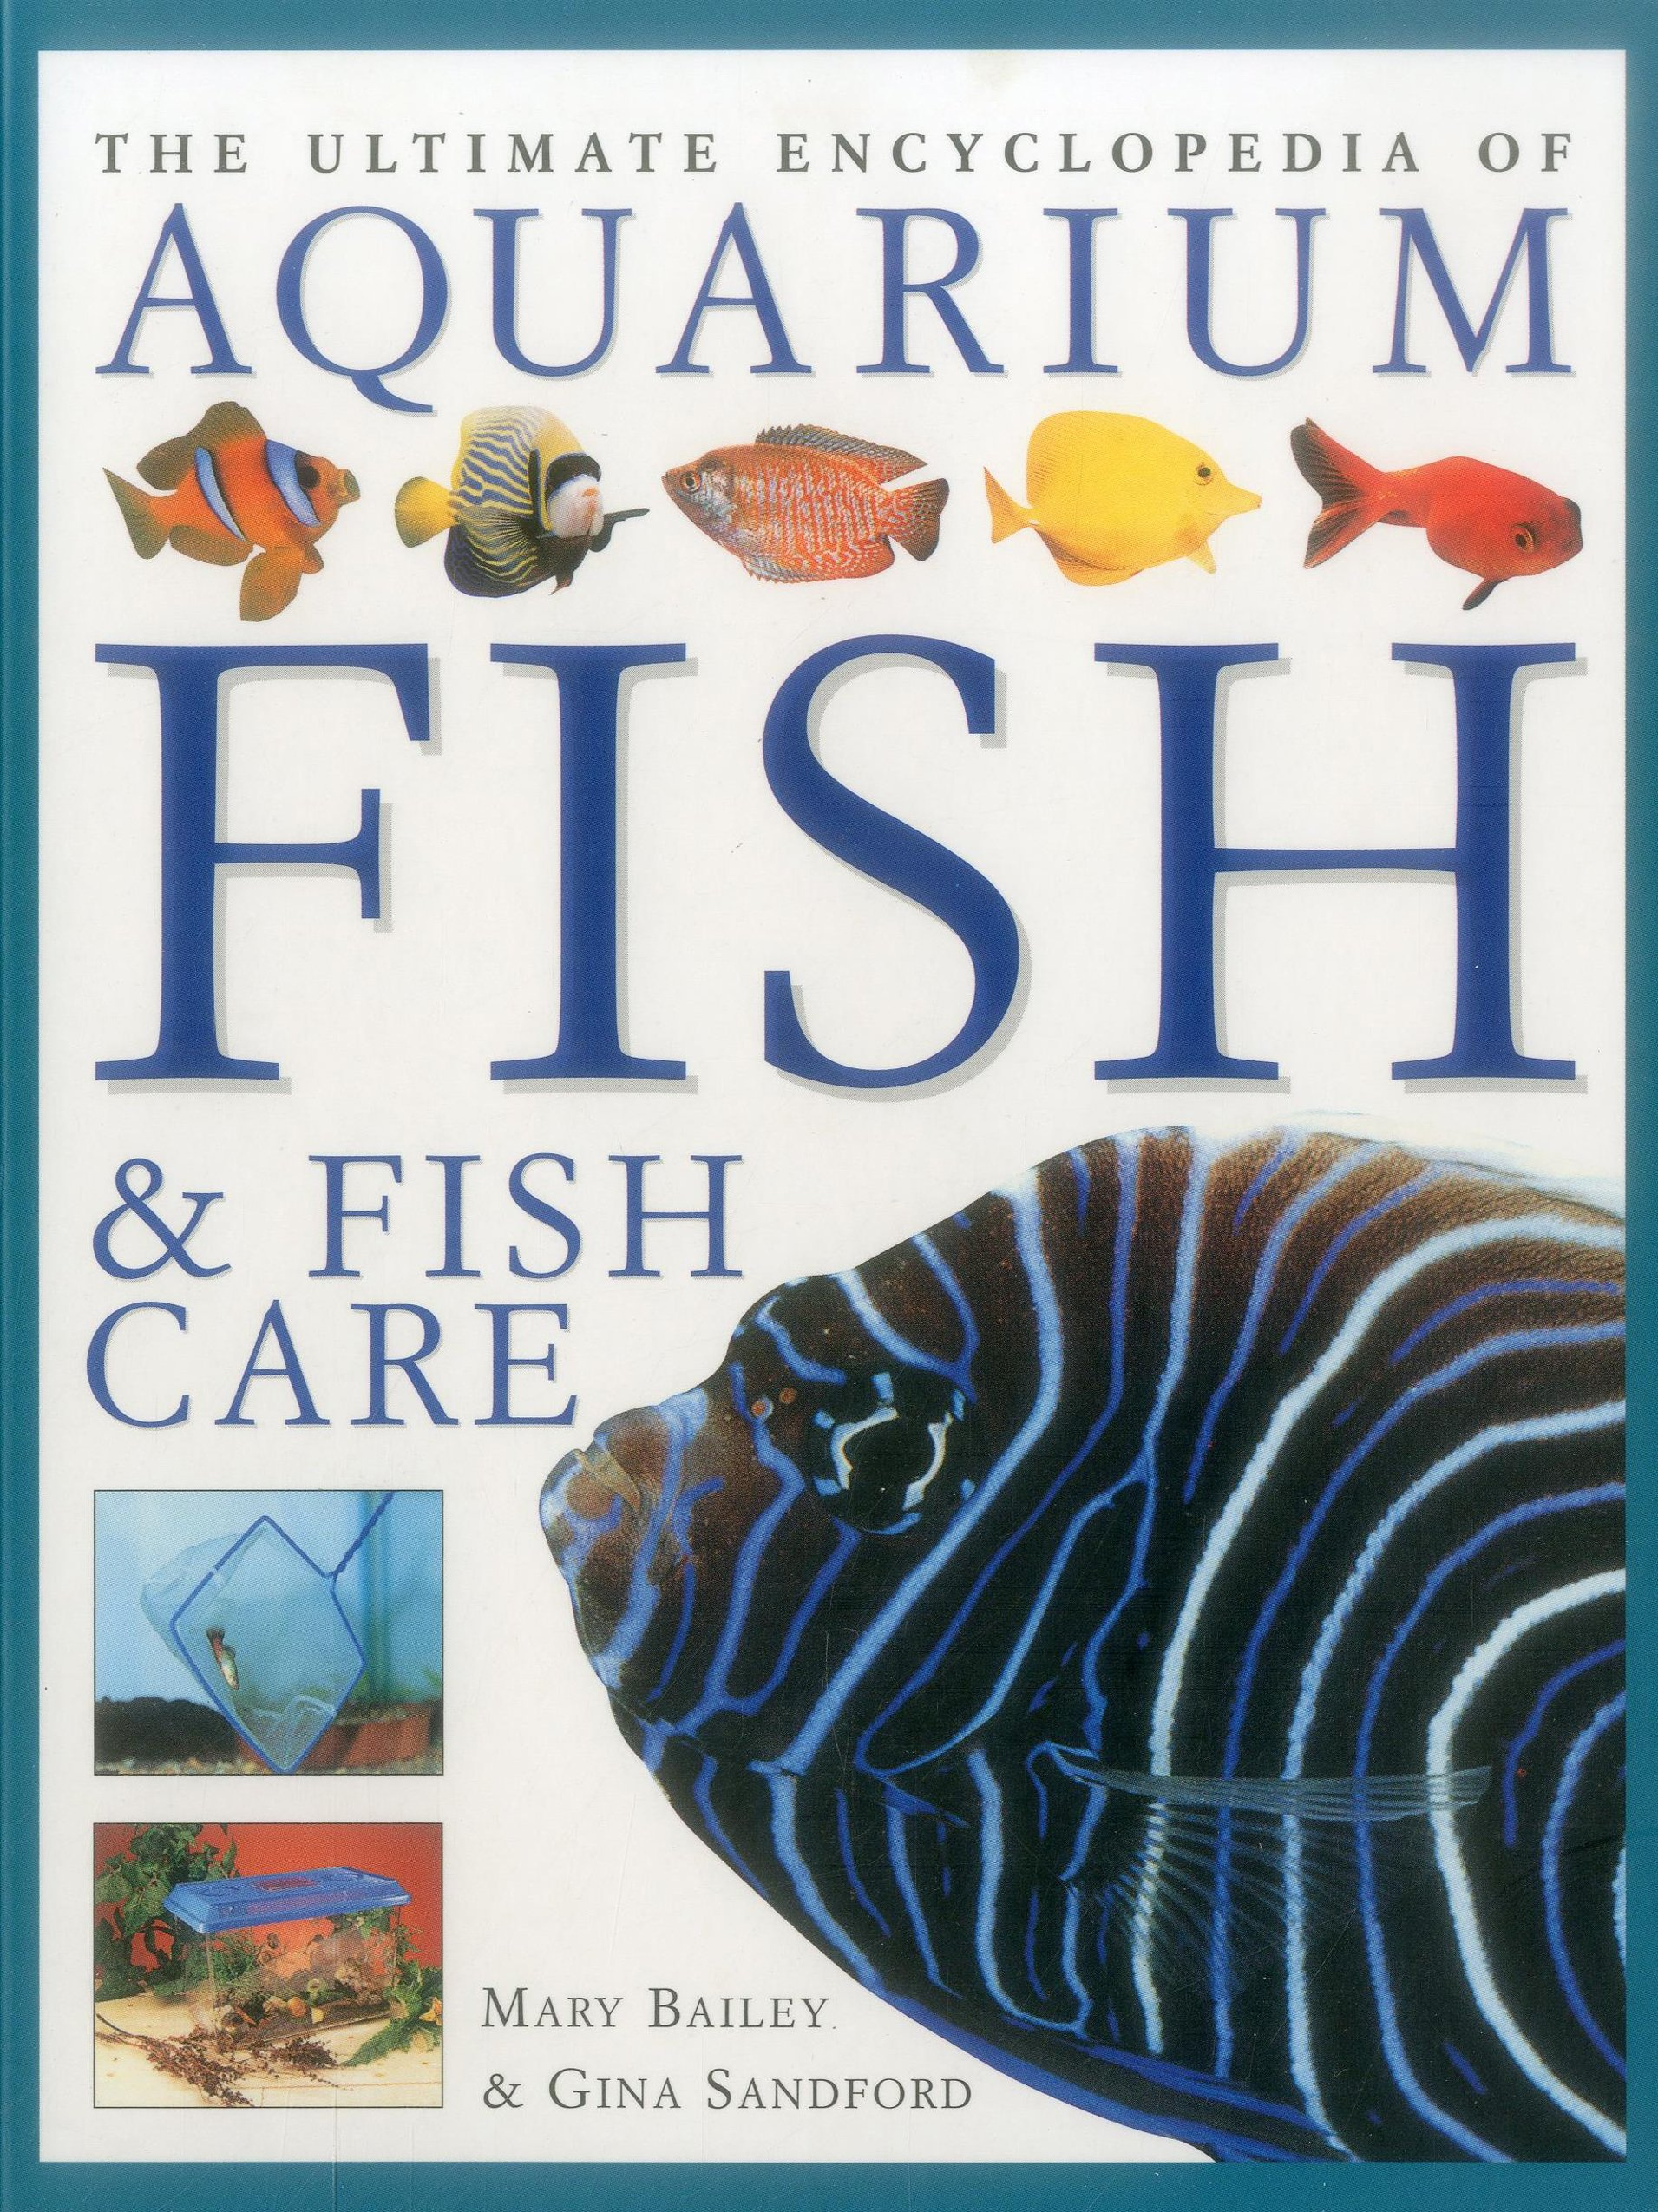 500 freshwater aquarium fish by greg jennings - The Ultimate Encyclopedia Of Aquarium Fish Fish Care A Definitive Guide To Identifying And Keeping Freshwater And Marine Fishes Mary Bailey